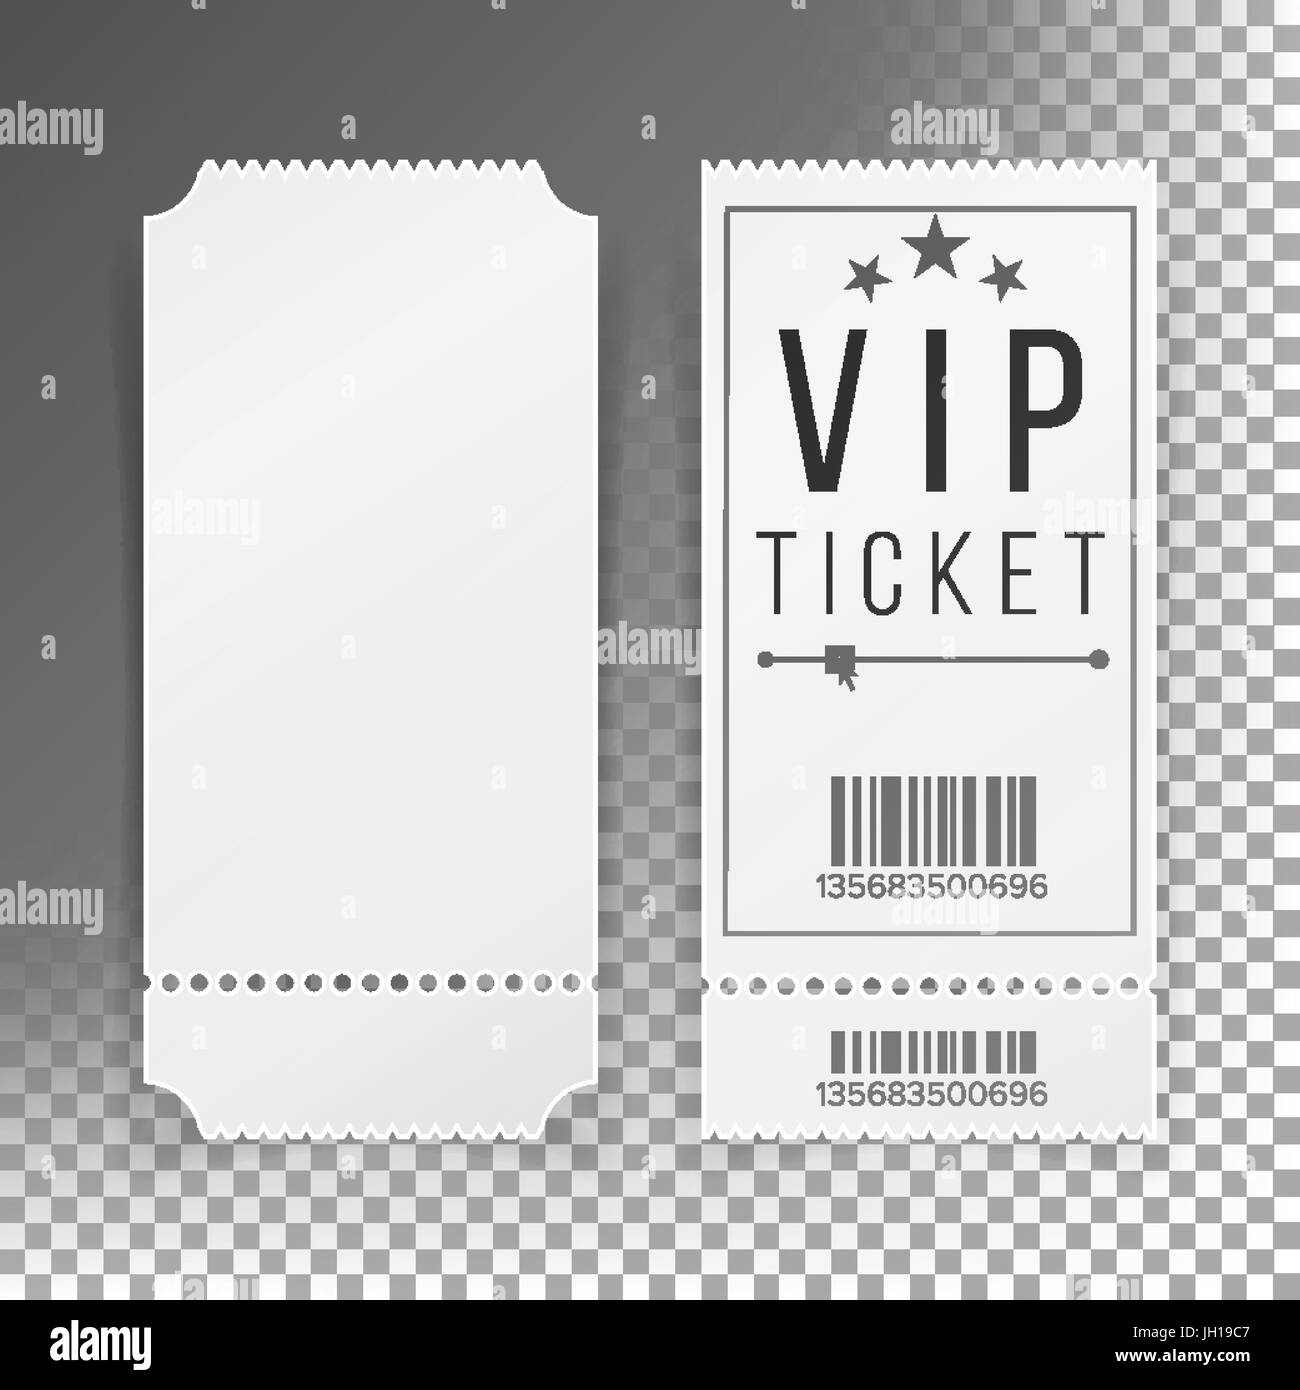 Ticket Template Set Vector. Blank Theater, Cinema, Train, Football Tickets  Coupons. Isolated On Transparent Background  Blank Ticket